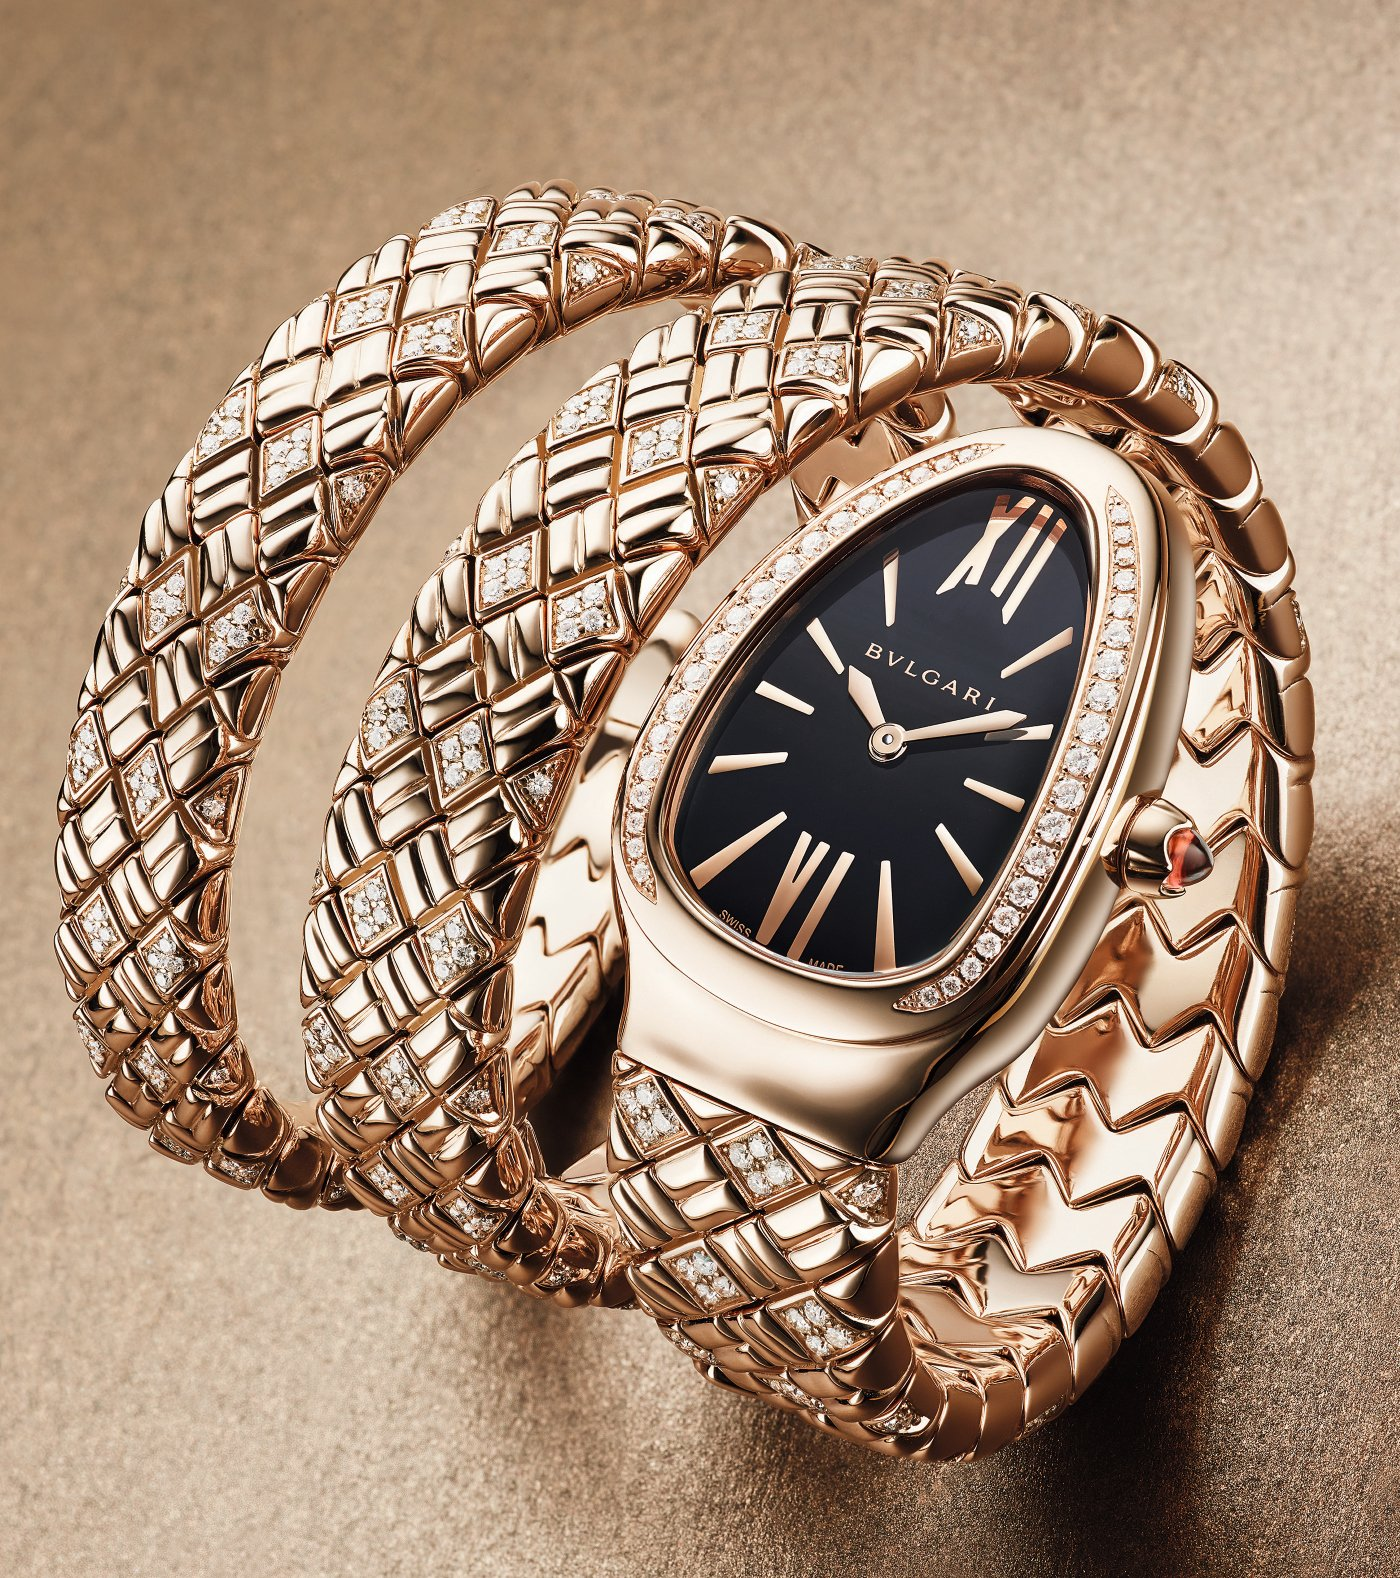 bulgari_serpenti_spiga_gold_and_black_-_europa_star_watch_magazine_2021